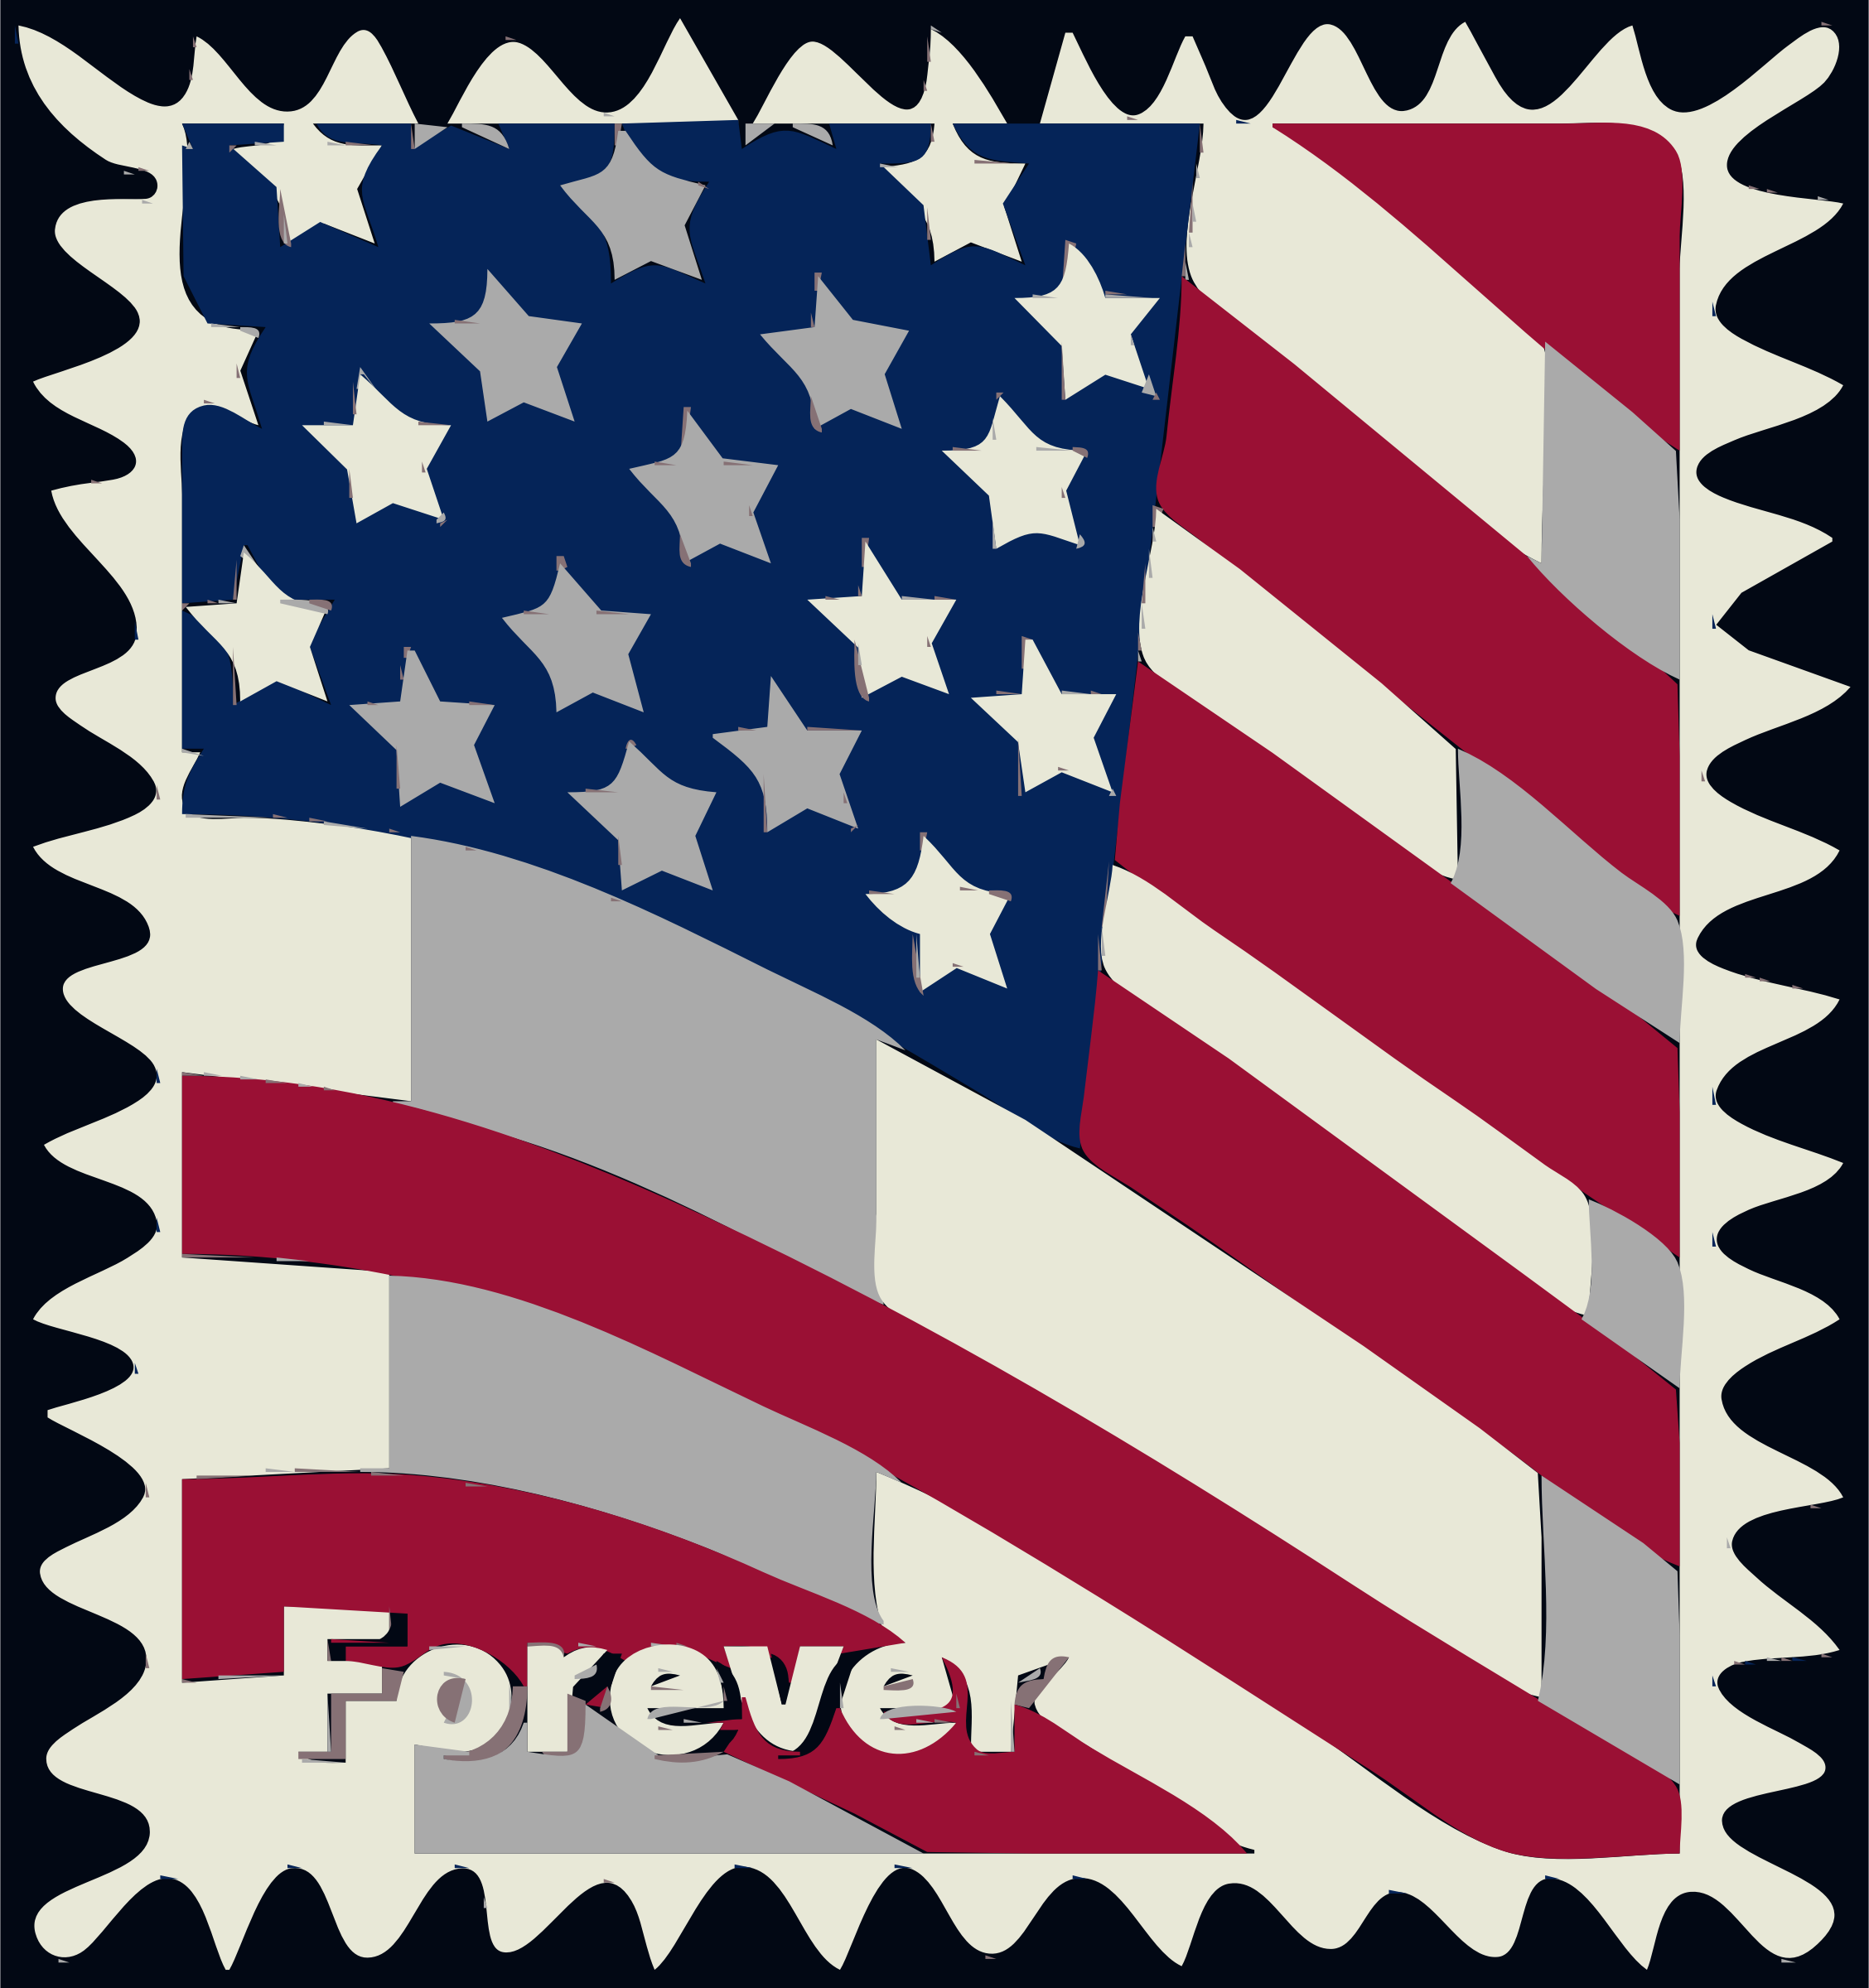 United states postal service clipart graphic freeuse Free Postal Cliparts, Download Free Clip Art, Free Clip Art ... graphic freeuse